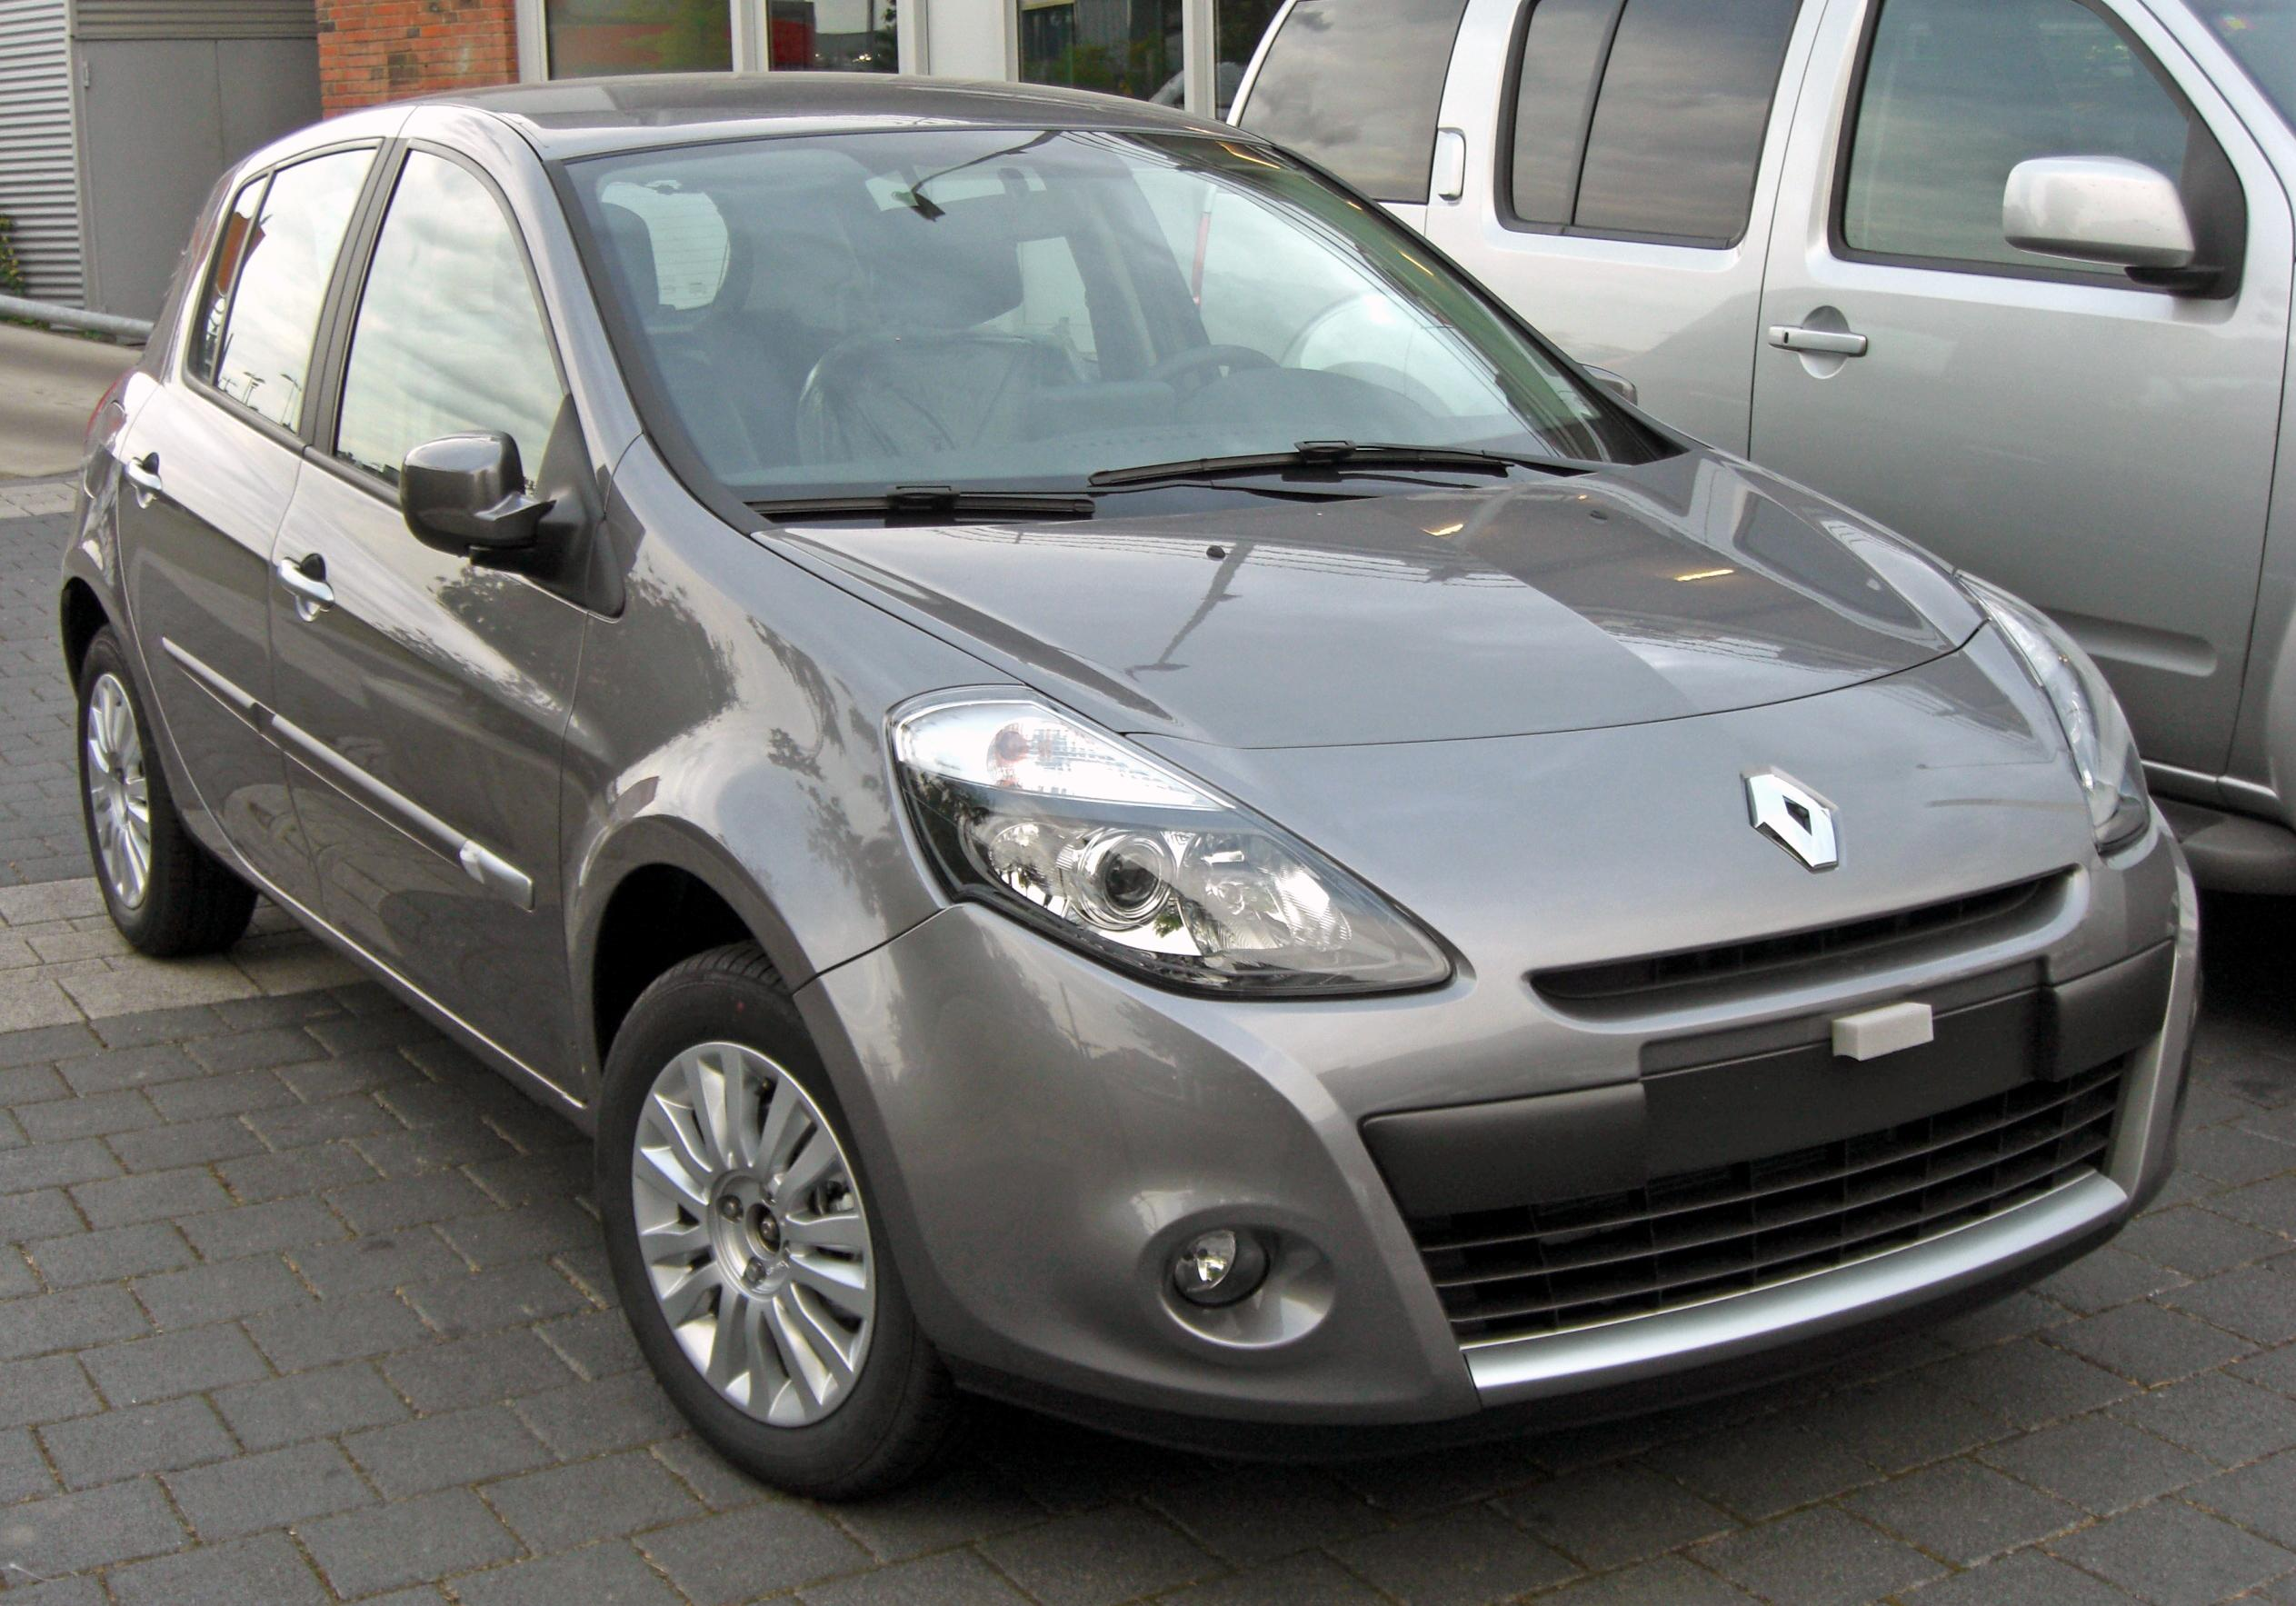 file renault clio iii facelift 20090603 front jpg wikimedia commons. Black Bedroom Furniture Sets. Home Design Ideas